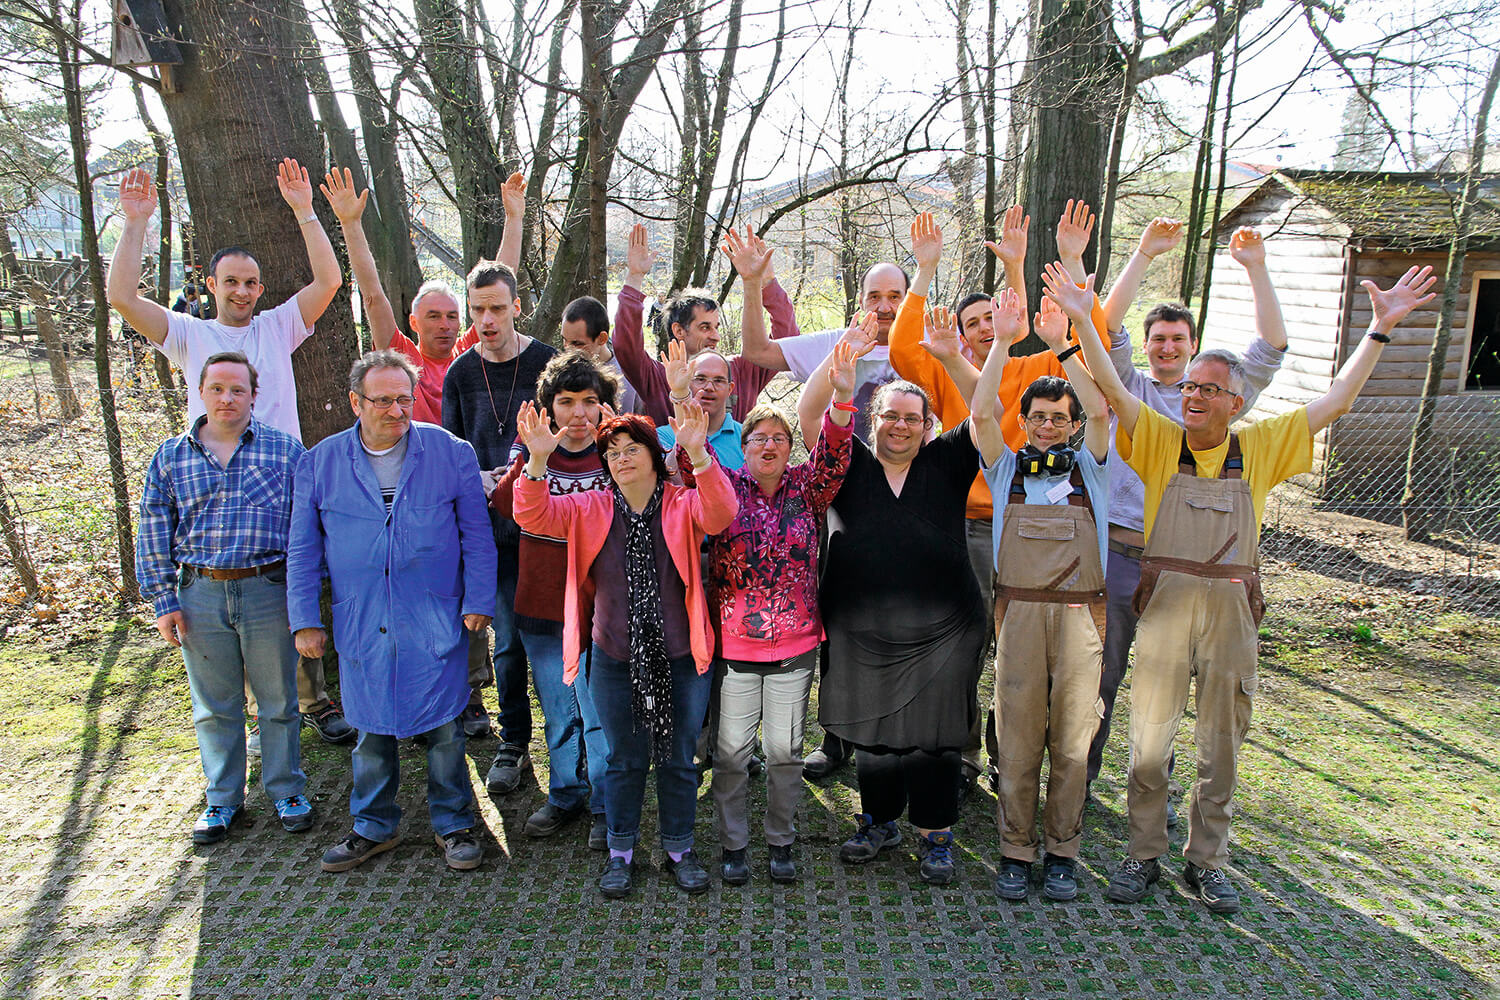 A group of skilled workers with disabilities who work for Metalog Tools to create sustainable training tools stands outside